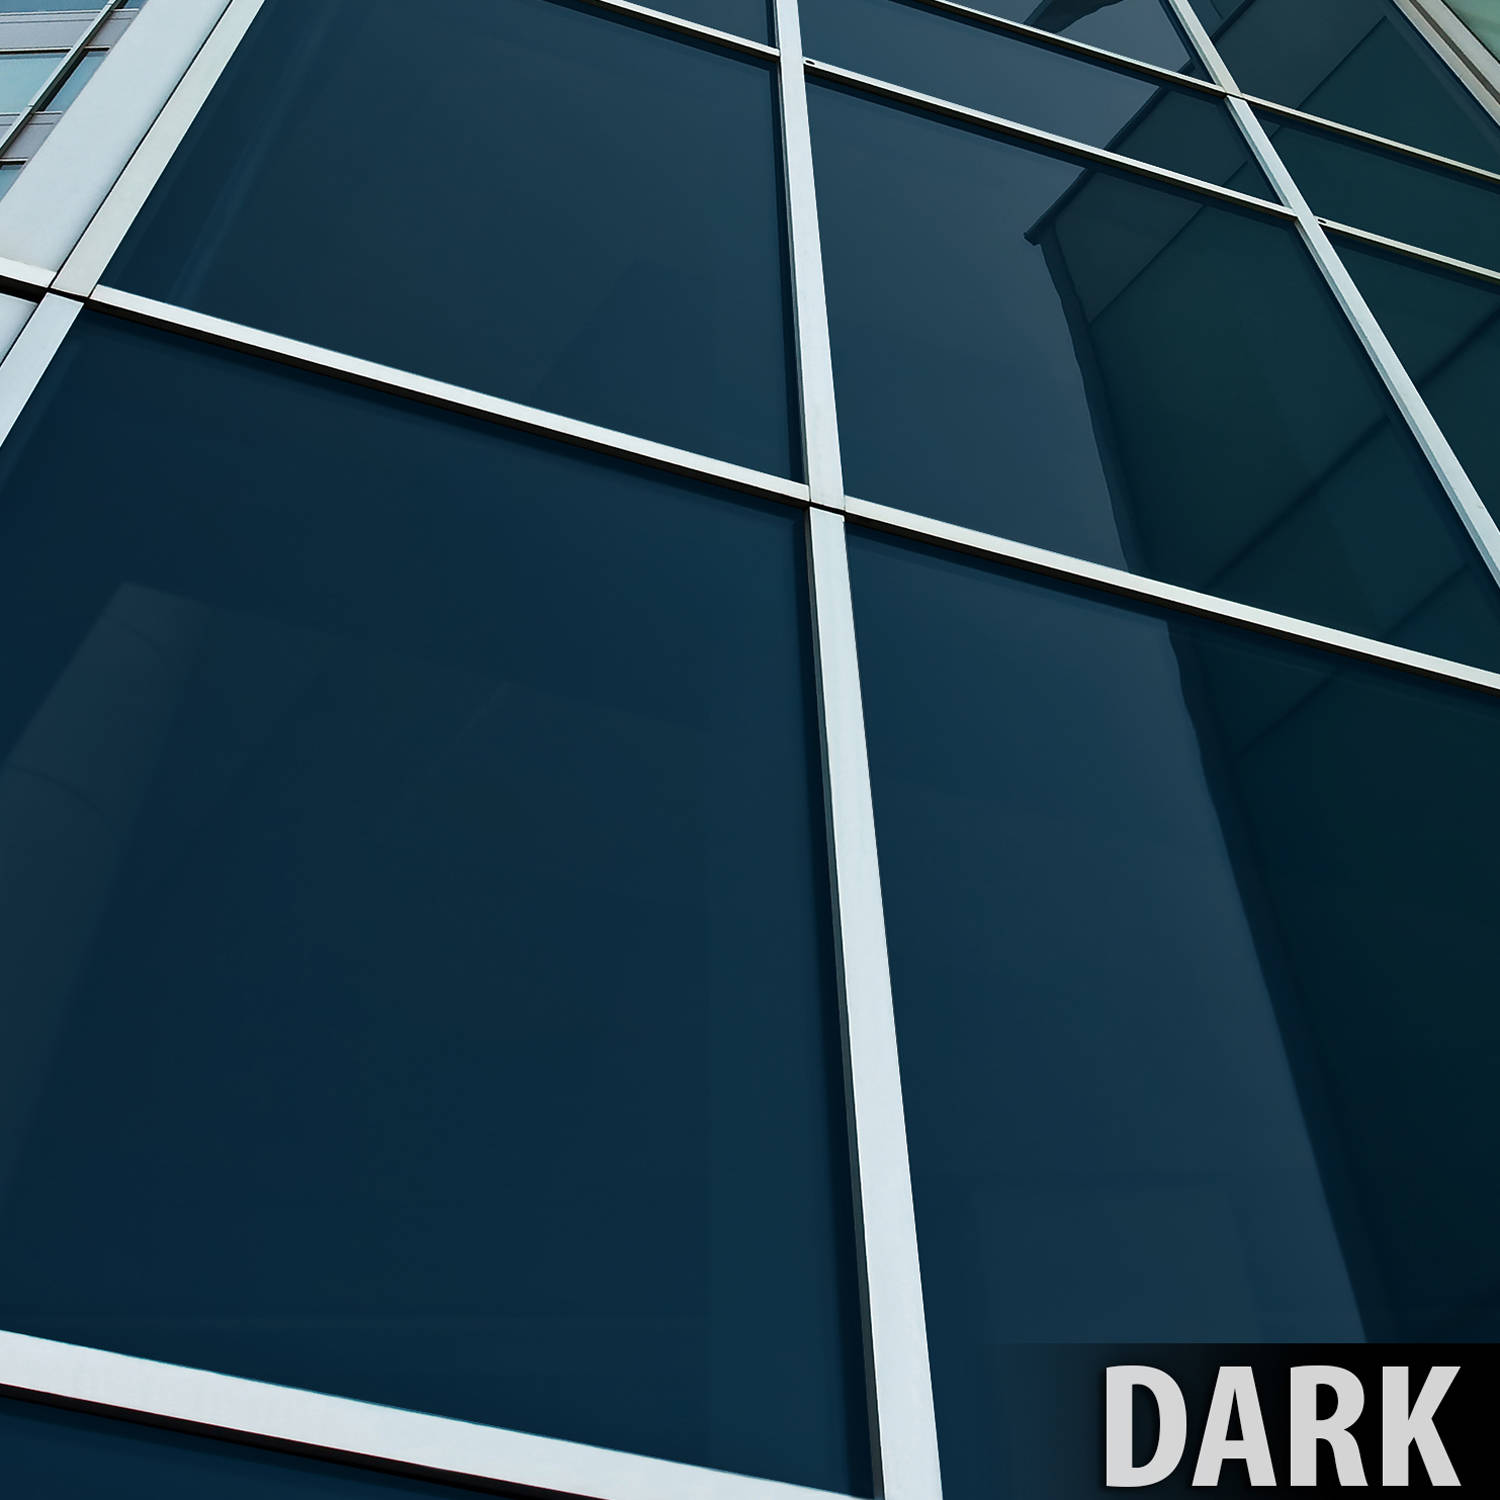 BDF PRGY Premium Heat Control and Daytime Privacy Grey Window Film 24in X 24ft by BuyDecorativeFilm